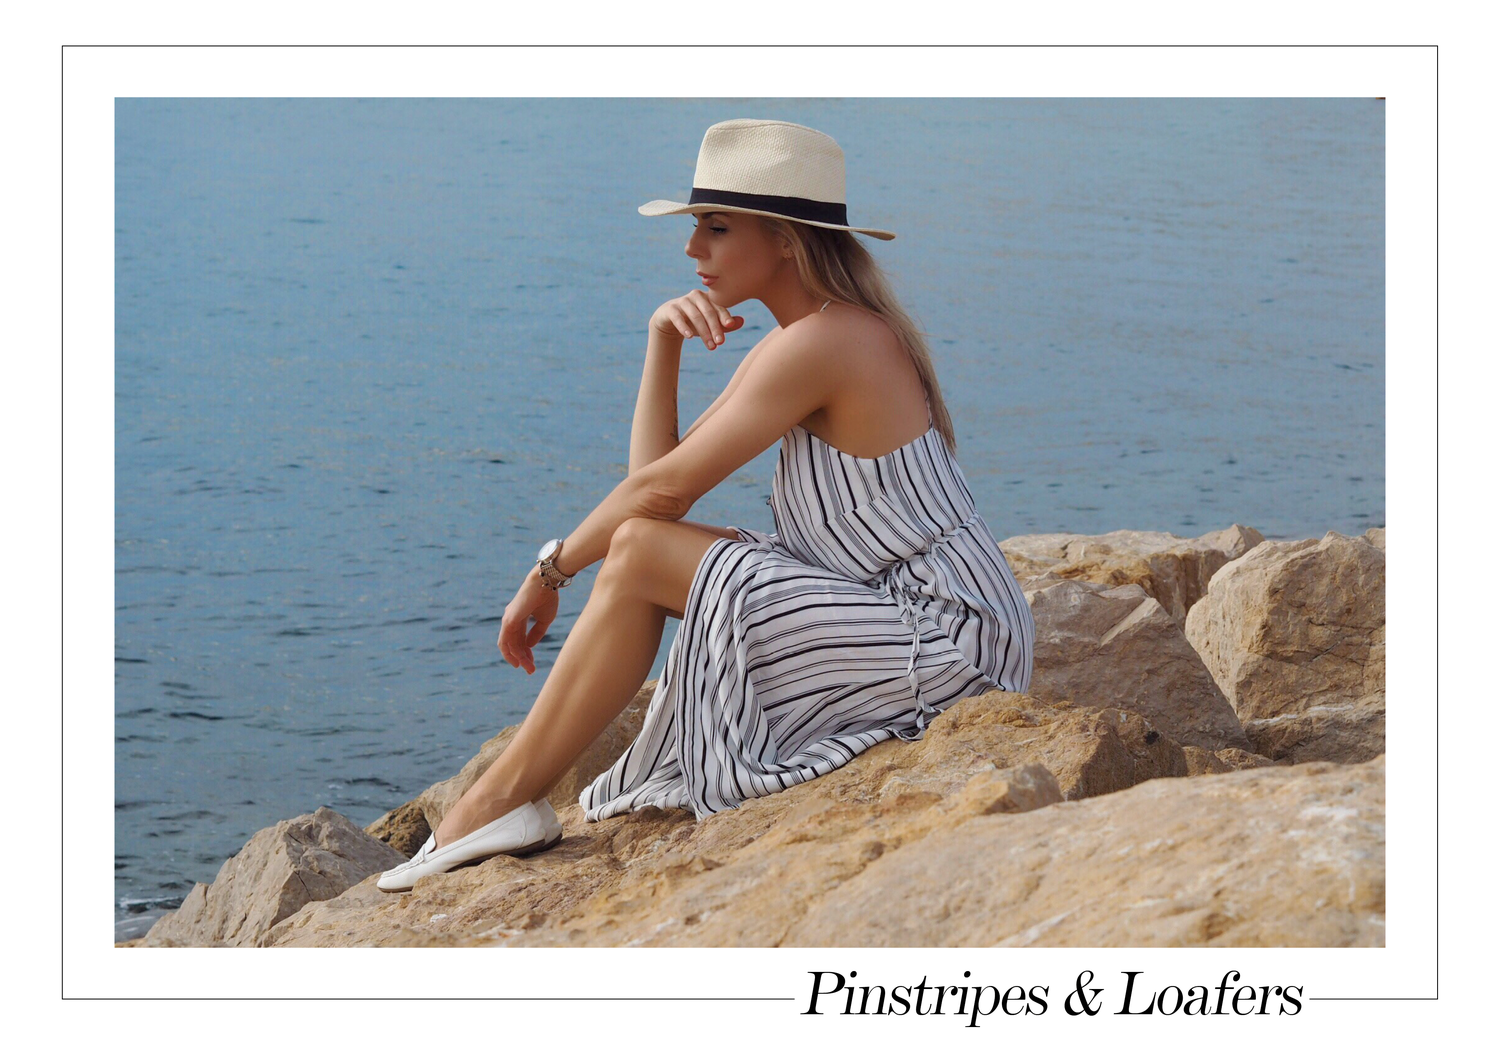 CANNES, RIVIERA, SOUTH OF FRANCE, YACHT FASHION, SUMMER VACATION STYLE, WHAT TO WEAR ON HOLIDAY, LAURA BLAIR, LONDON FASHION GIRL